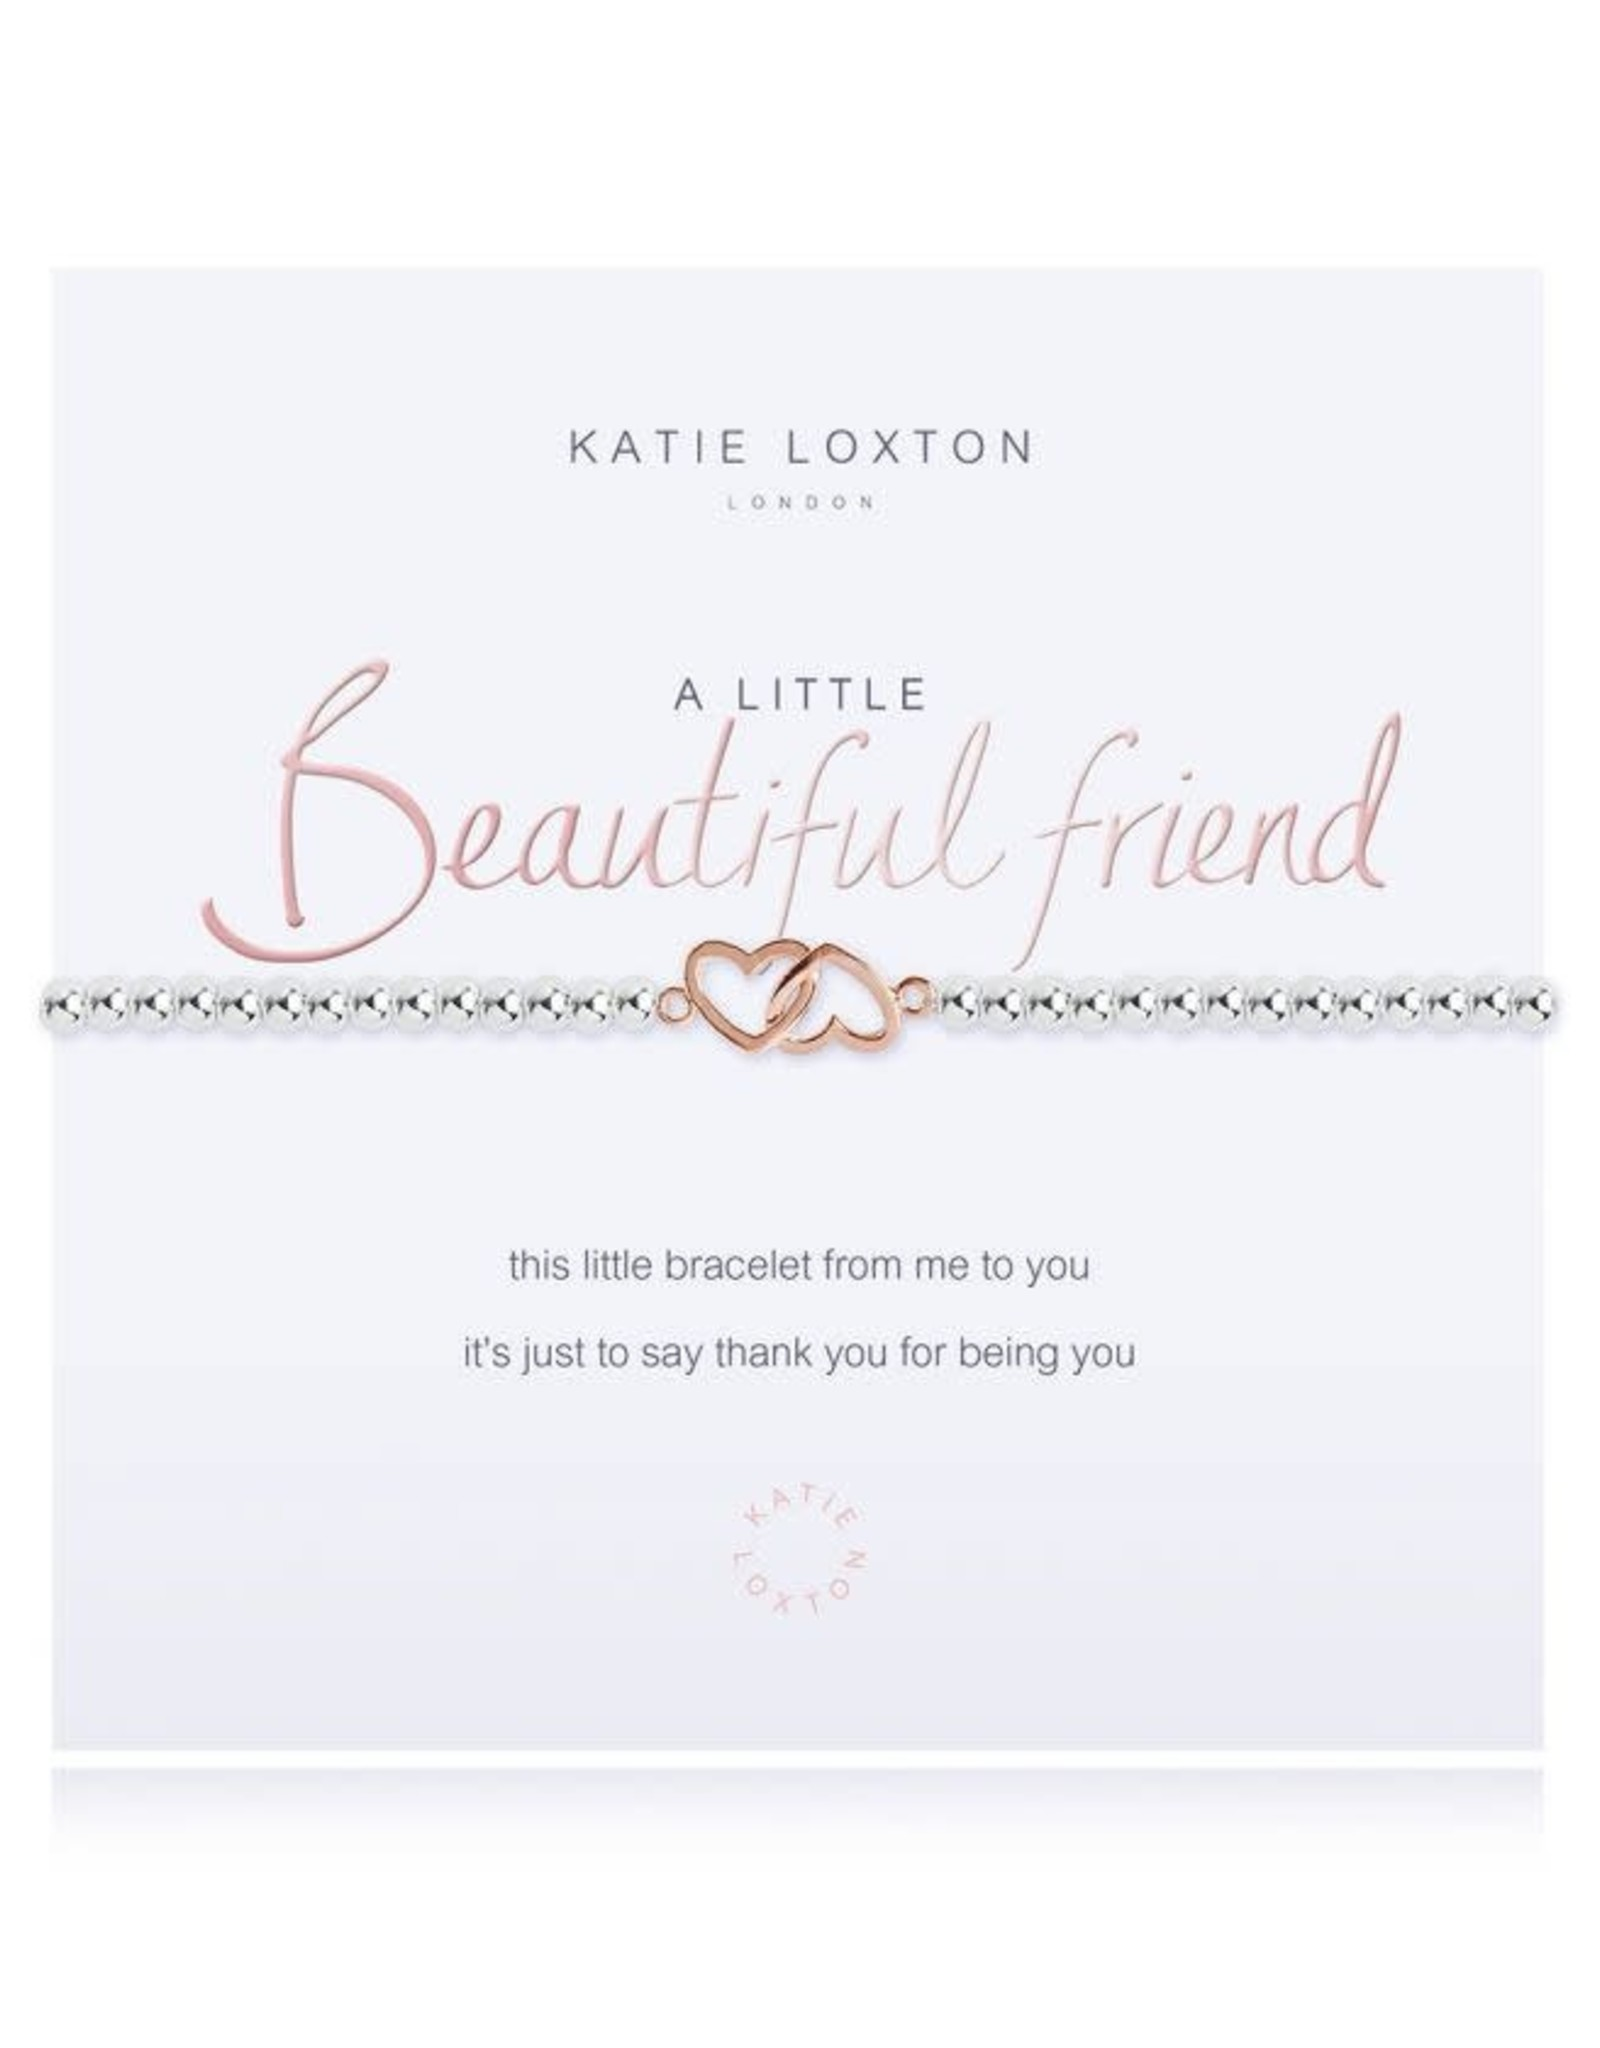 Katie Loxton Bracelet-Beautiful Friend